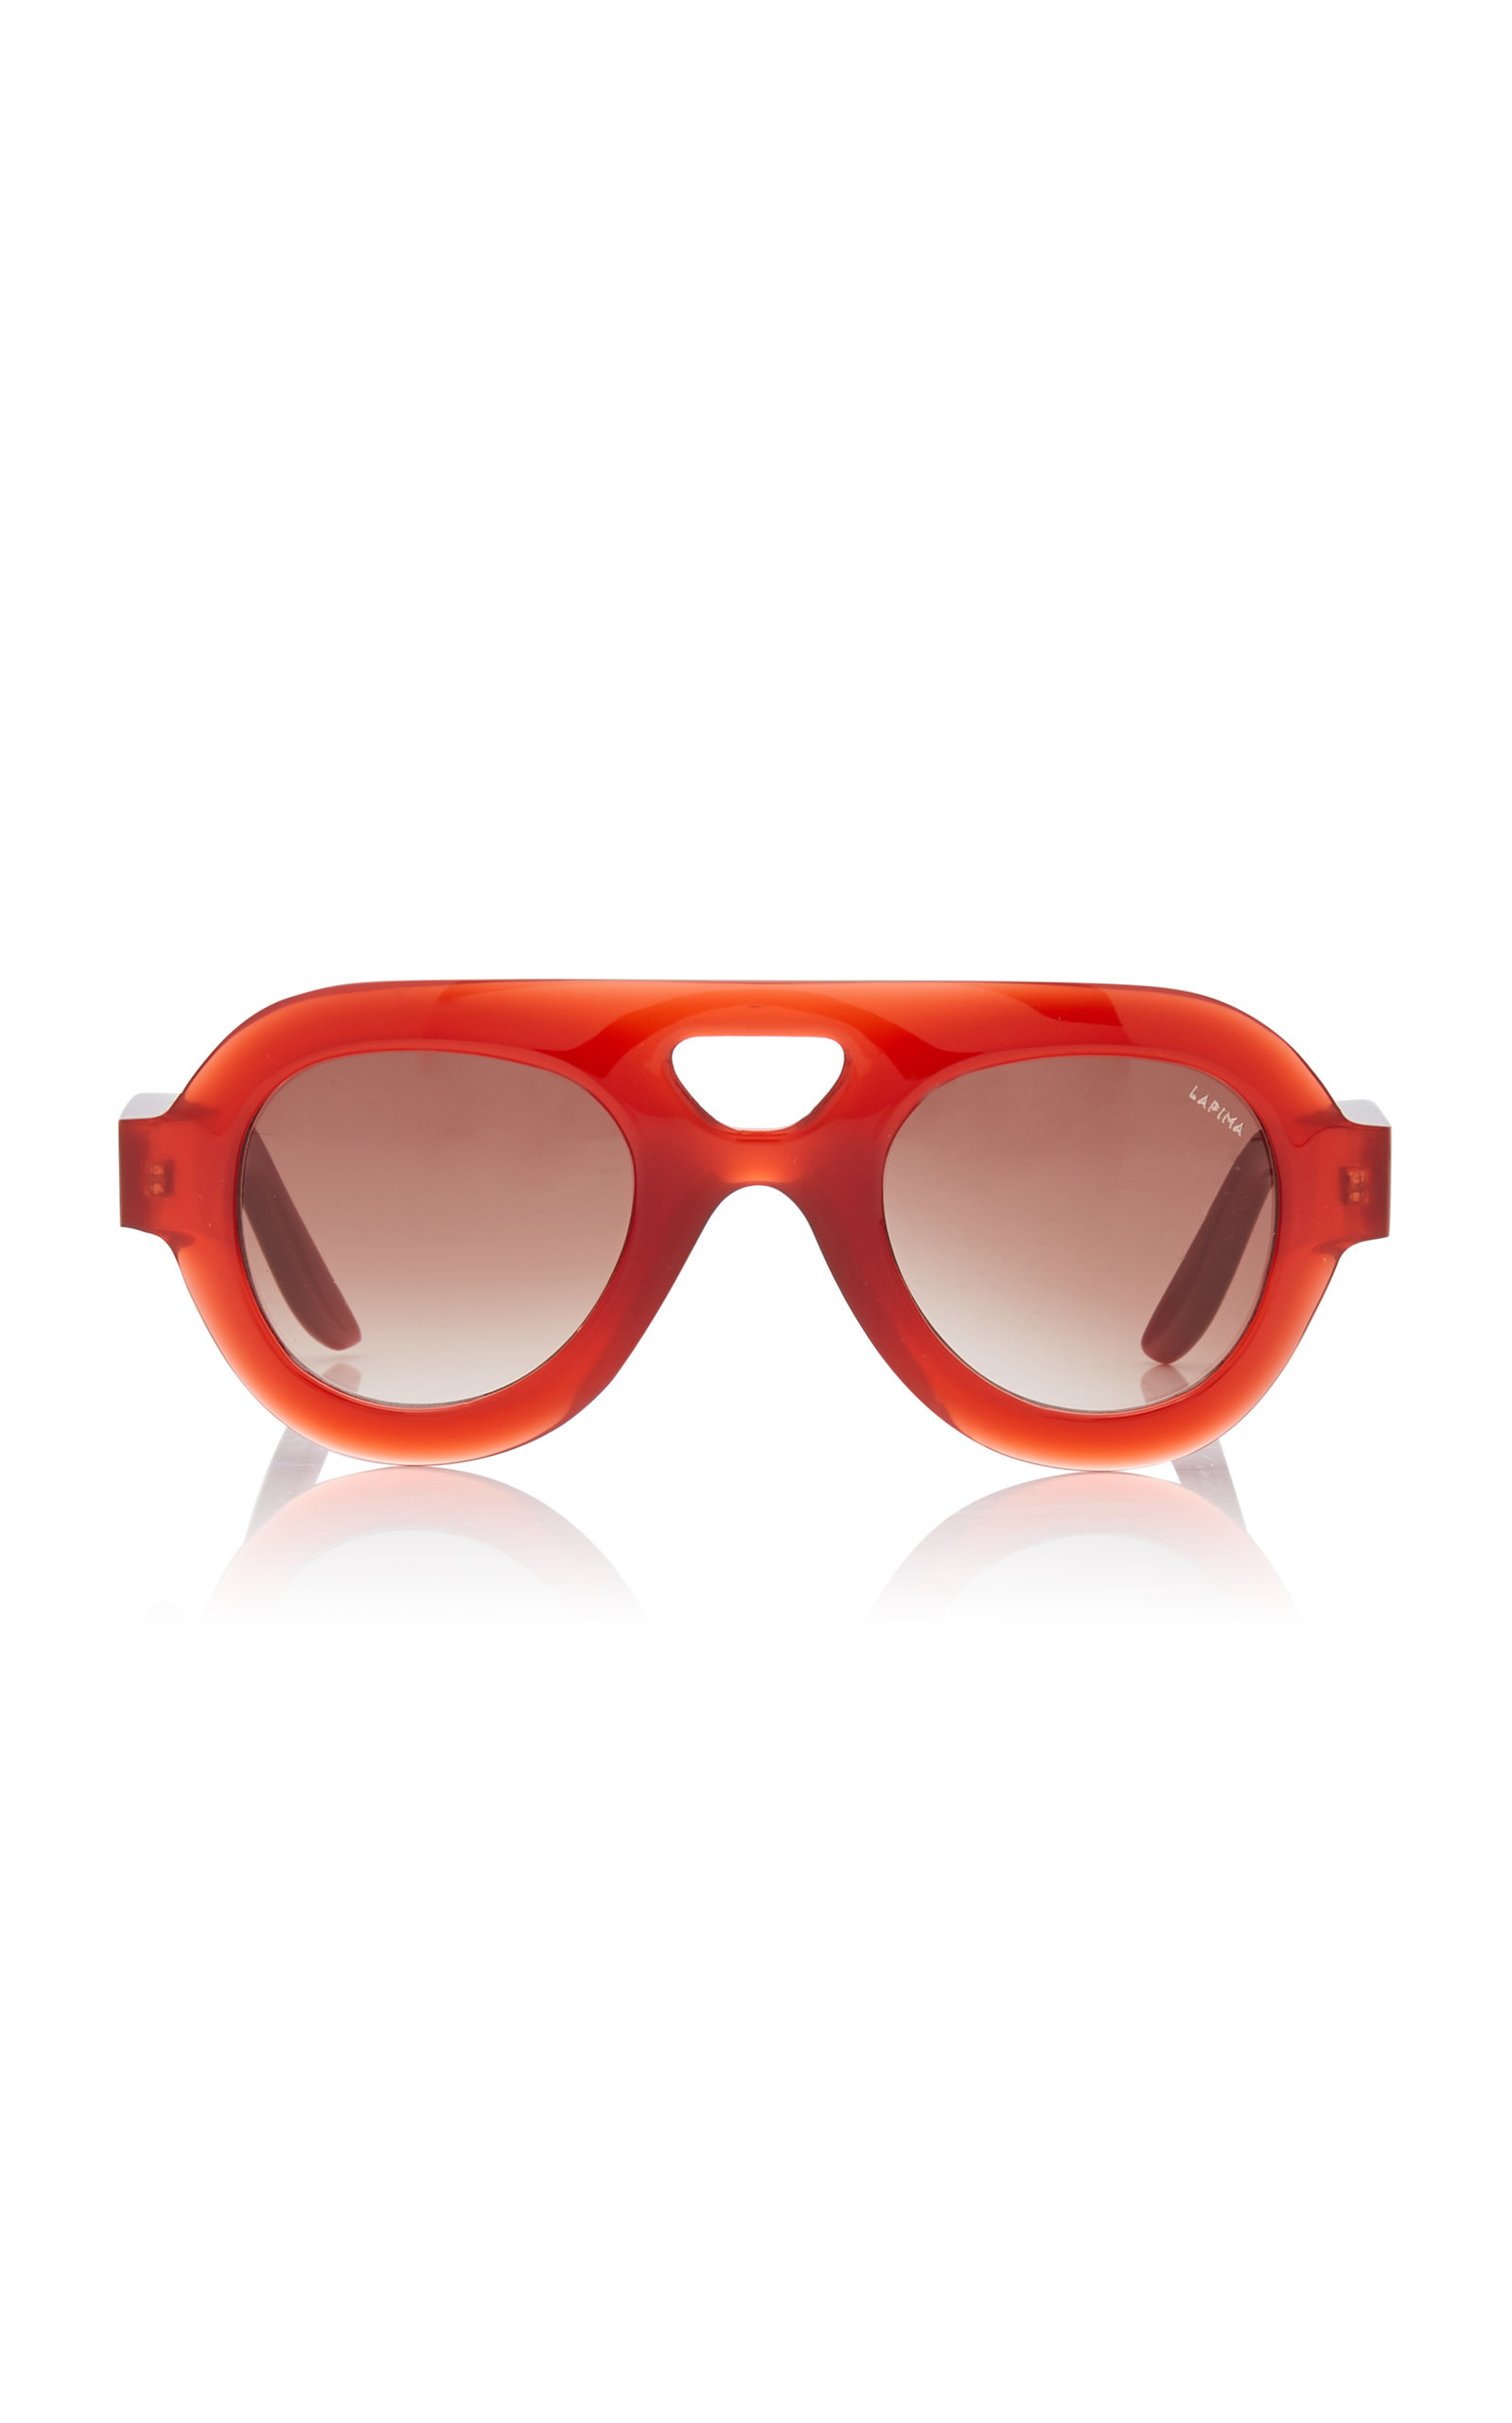 LAPIMA Milly Oversized Aviator-Style Acetate Sunglasses in Red